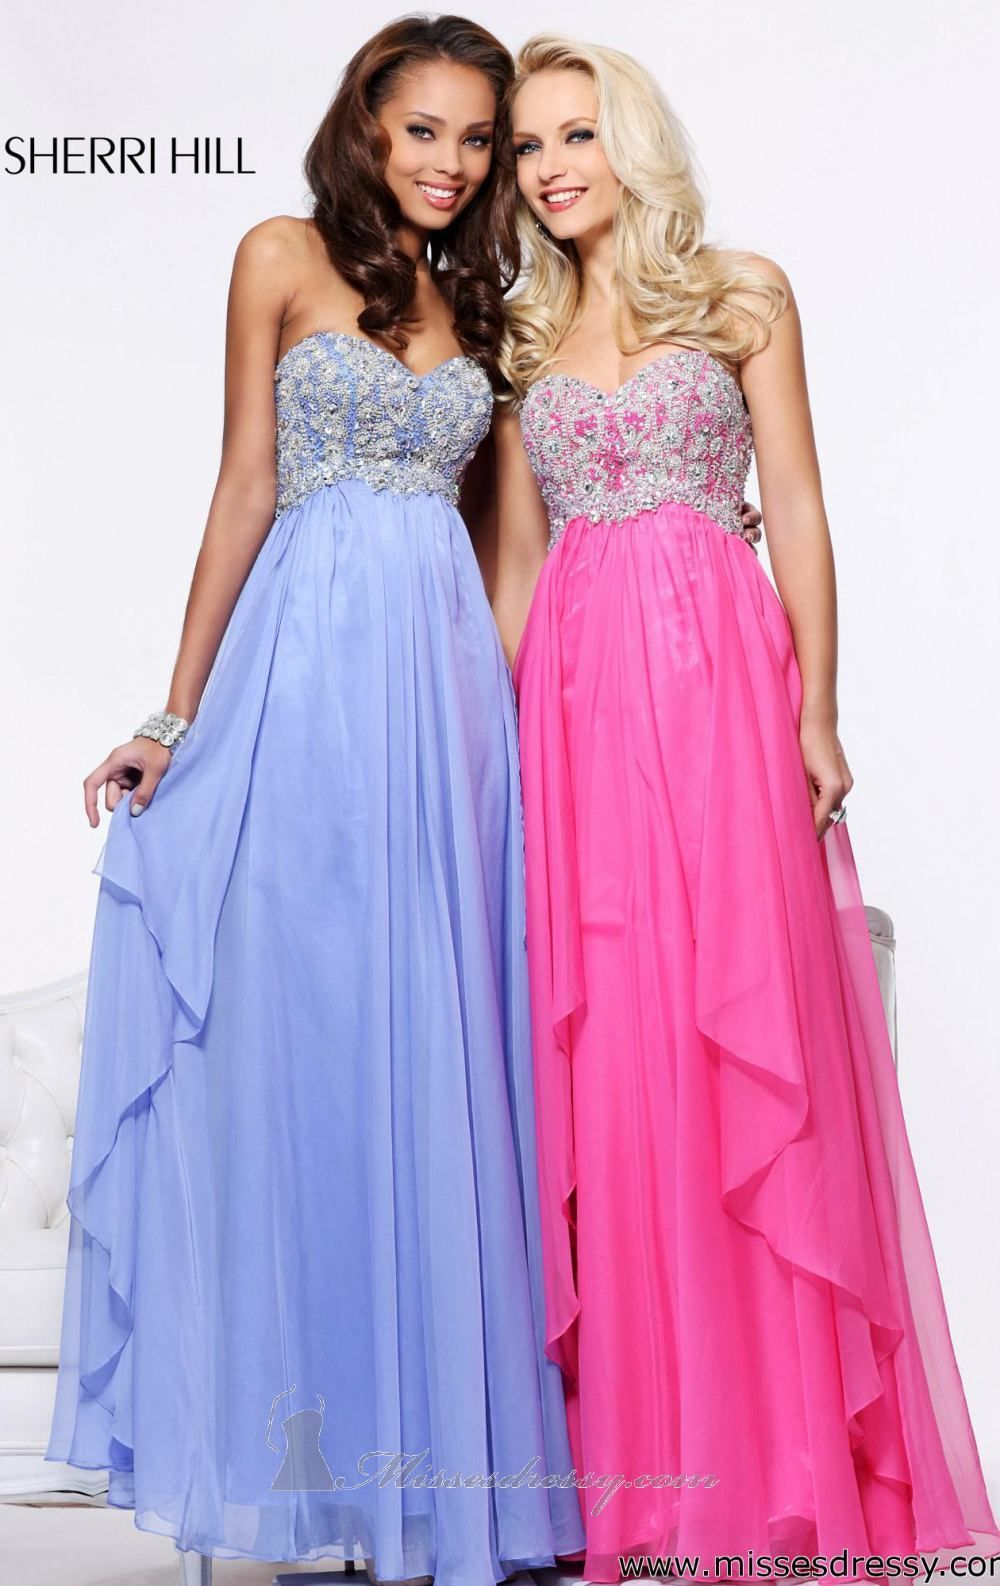 Sherri Hill 3862 Vestido - MissesDressy.com I want the purple one ...